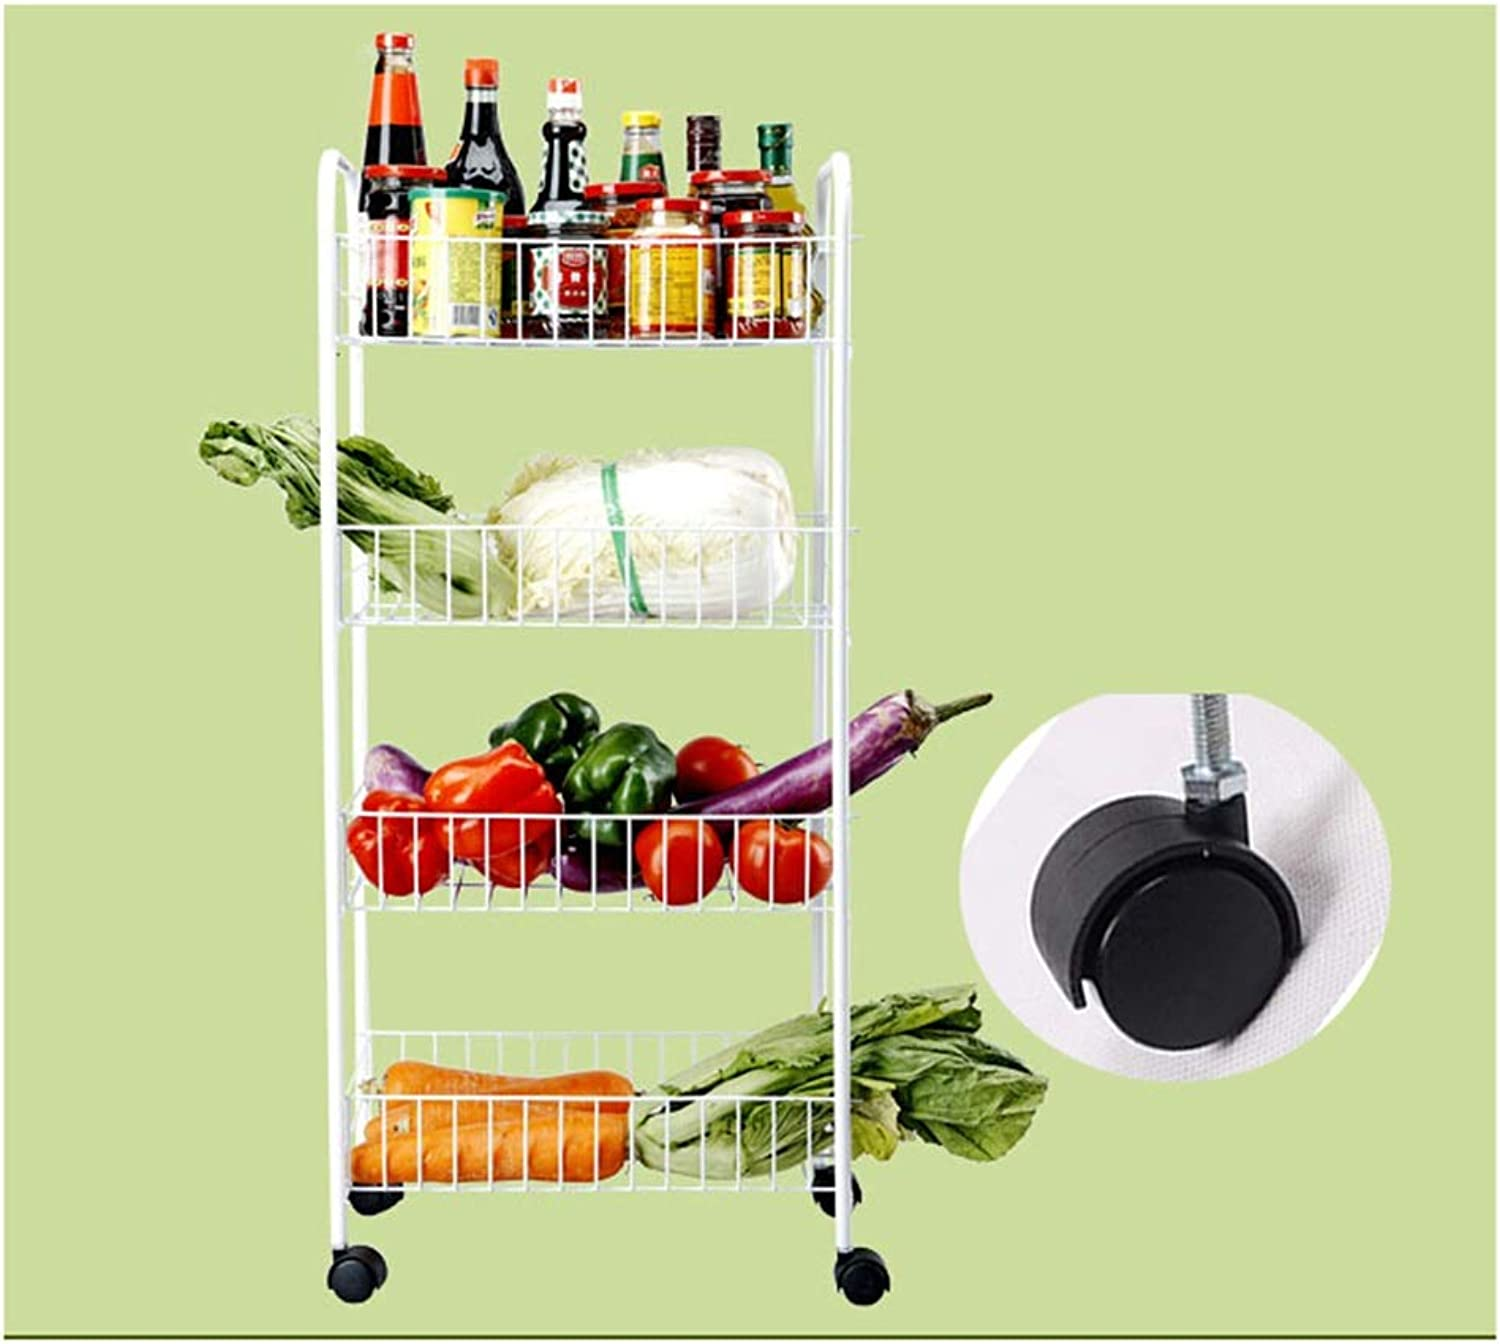 XLong-Home Trolley Rack Multi-Function Vegetable and Fruit Shelf Carbon Steel Kitchen Rack with Wheel Cart 4-Tires